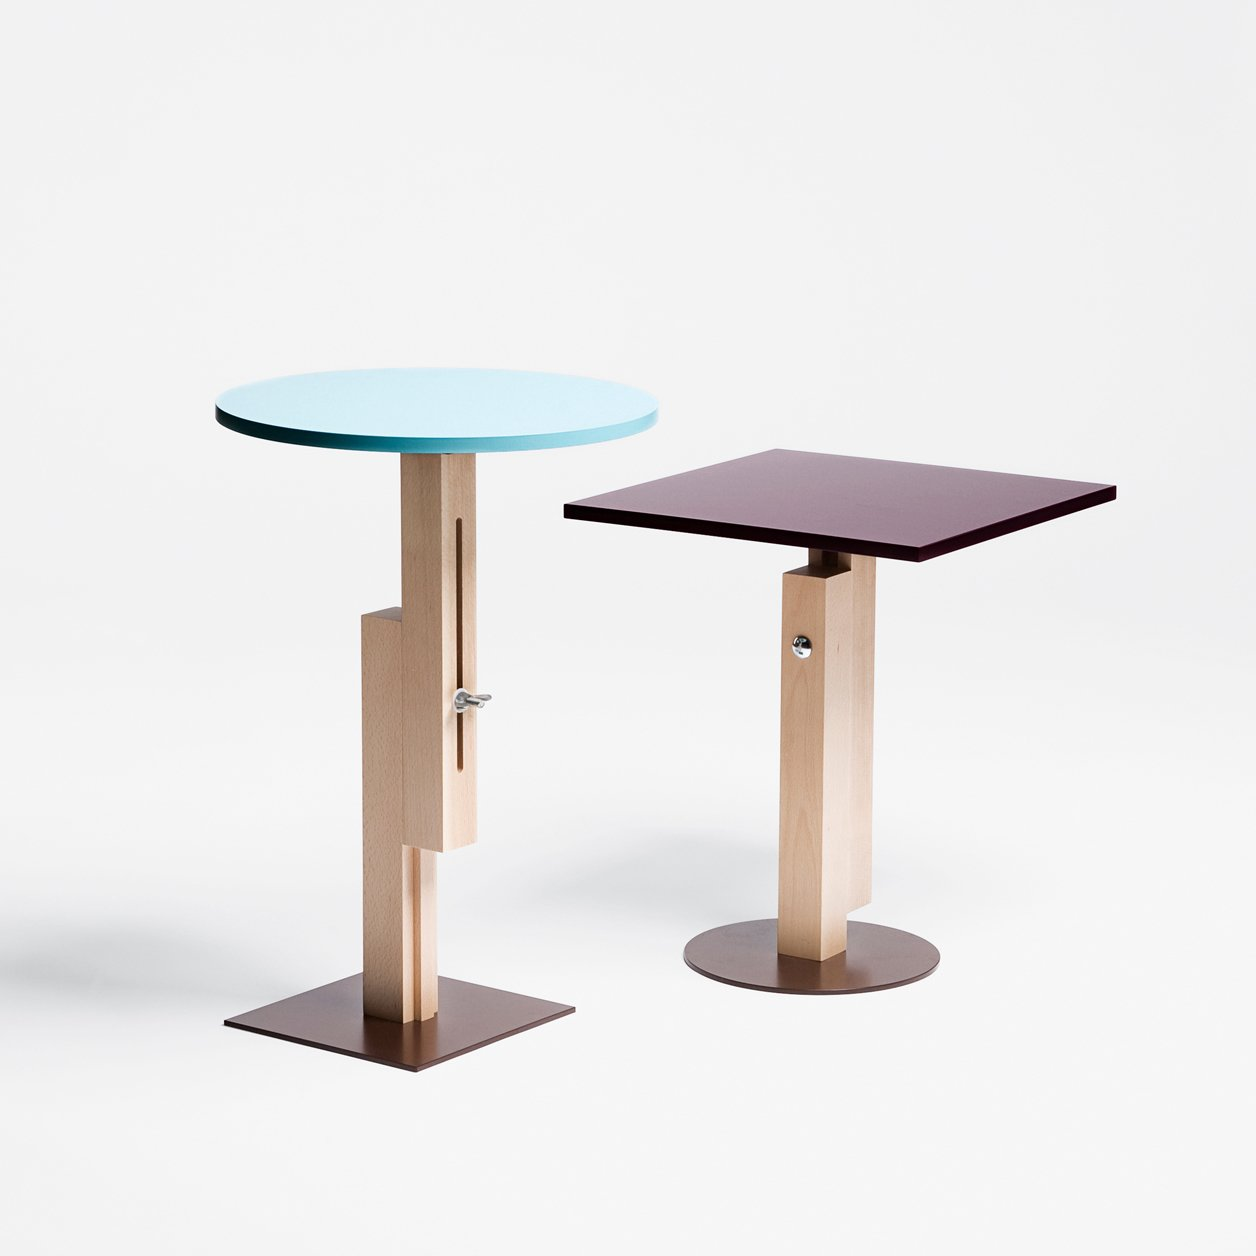 Konstantin Grcic's first releases, in 1991, were the Tom Tom and Tam Tam side tables for SCP. They were re-released in 2009 with sliding mechanisms on their support columns. The result? Adjustable height built in.